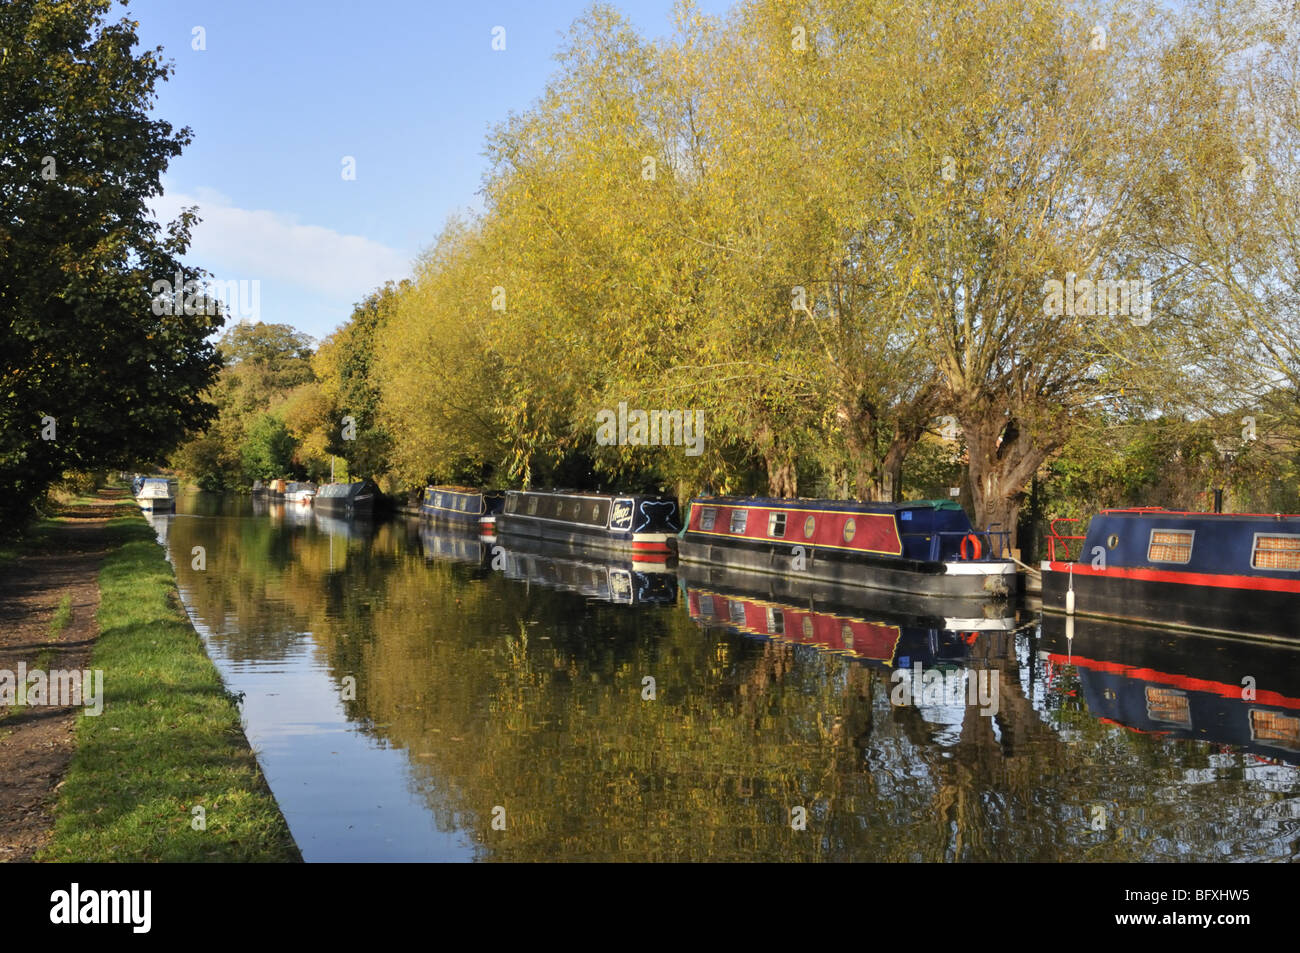 Autumn scenes on the Grand Union Canal in Hertfordshire, UK. - Stock Image